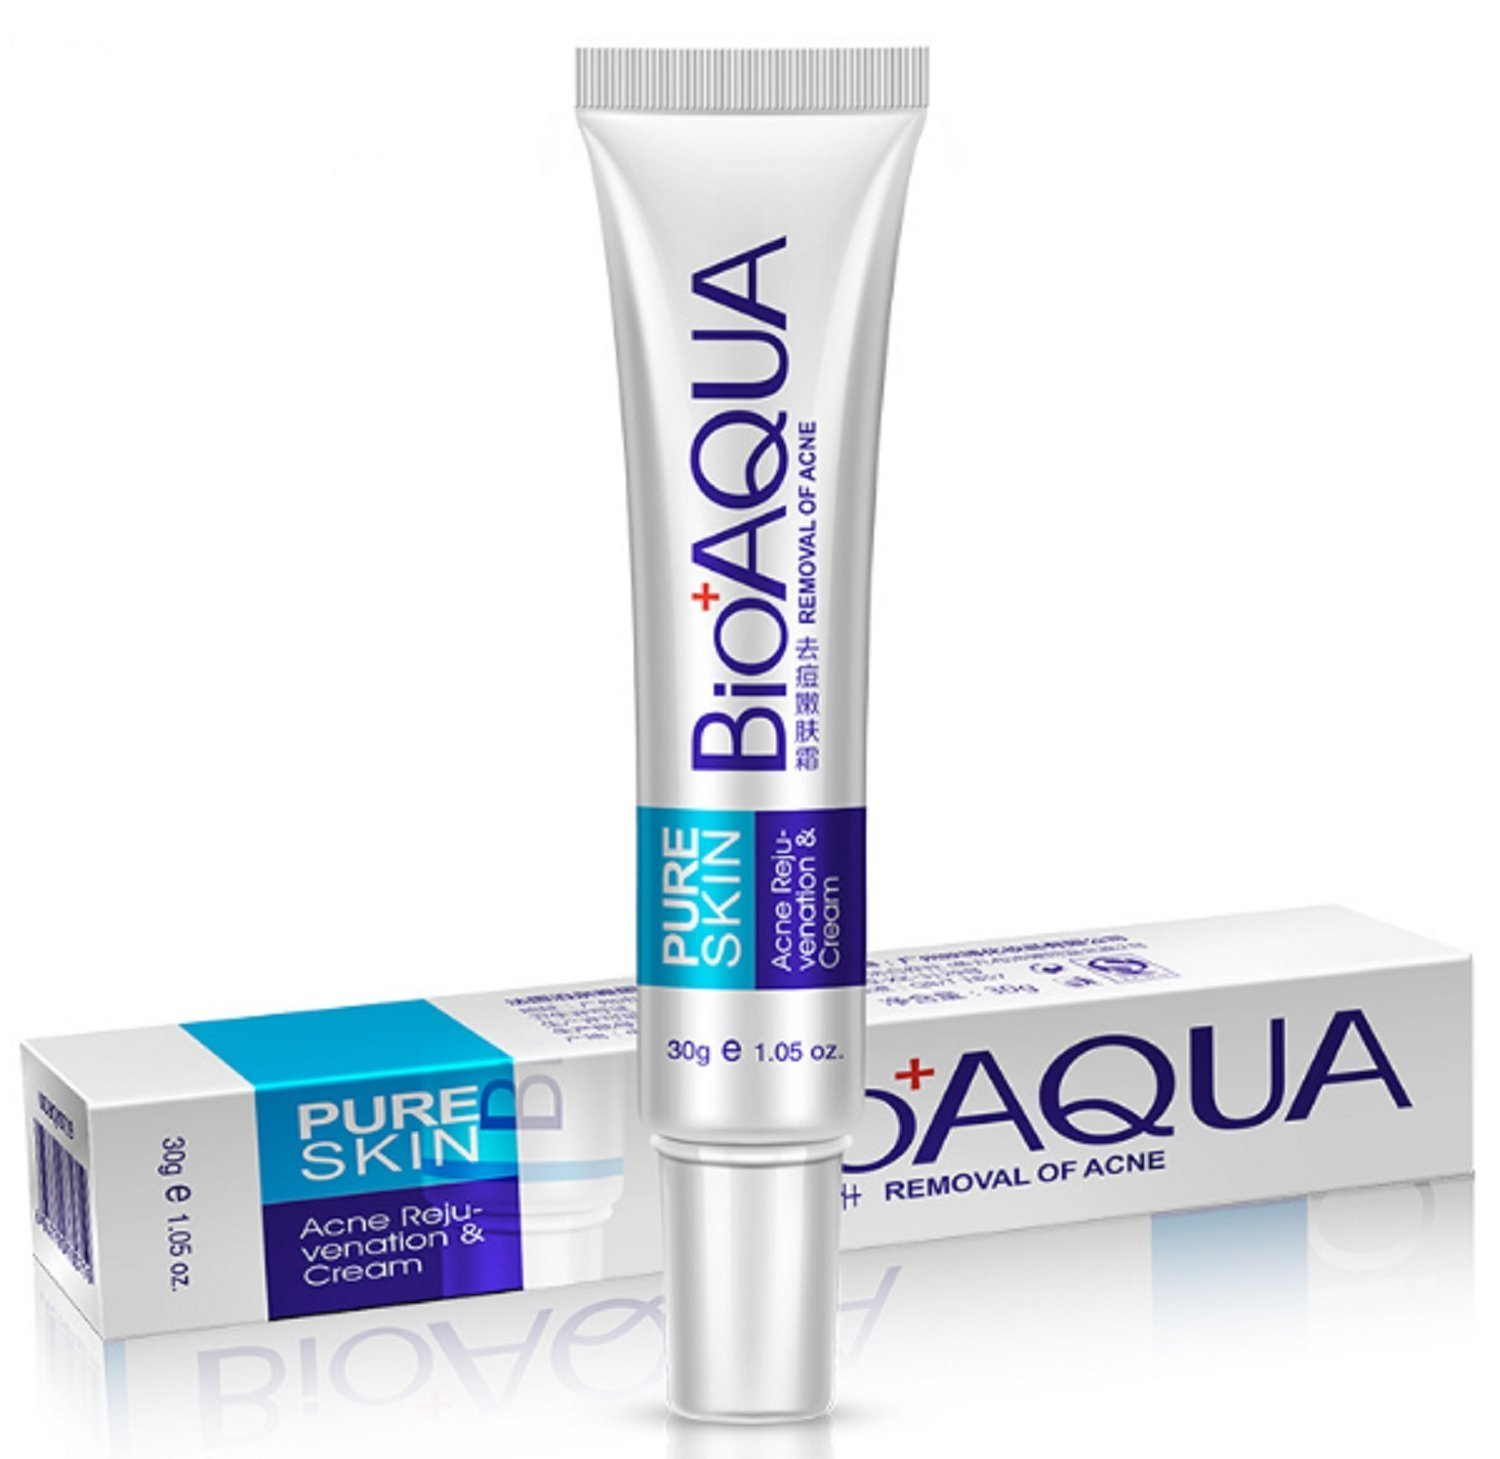 BIOAQUA PURE SKIN -Removal of Acne, Acne Scars, Shrink Pores, Oil Control, Acne Rejuvenation & Moisturizing Cream 30g PrimeStellar